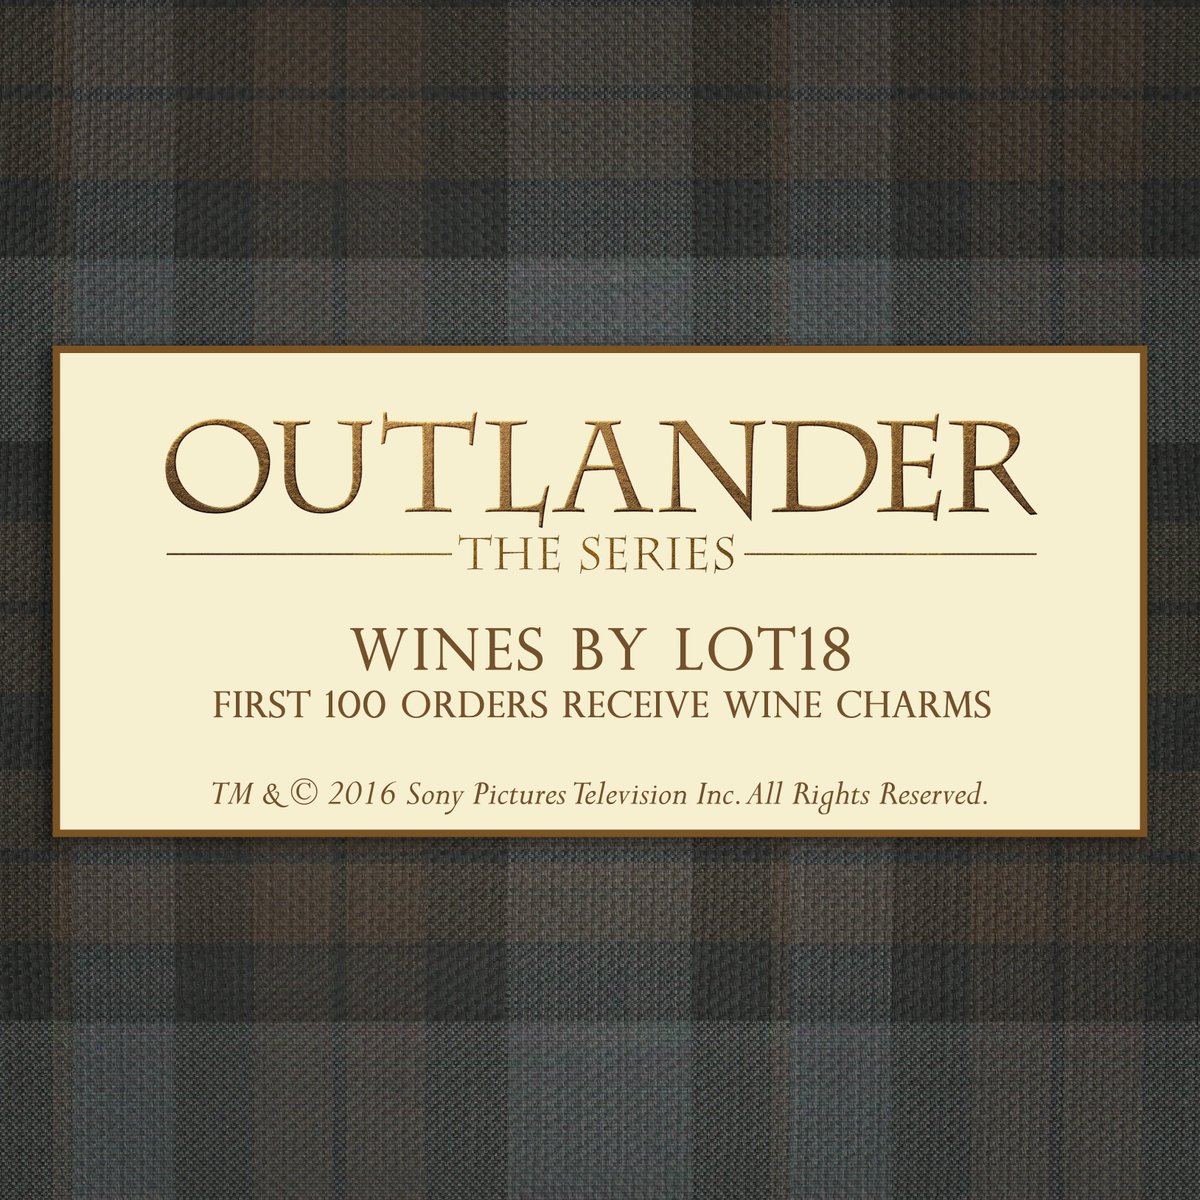 Limited edition #Outlander wines are here! First 100 buyers get a set of wine charms! https://t.co/6183MioLg1 https://t.co/lDAQvVSLIU